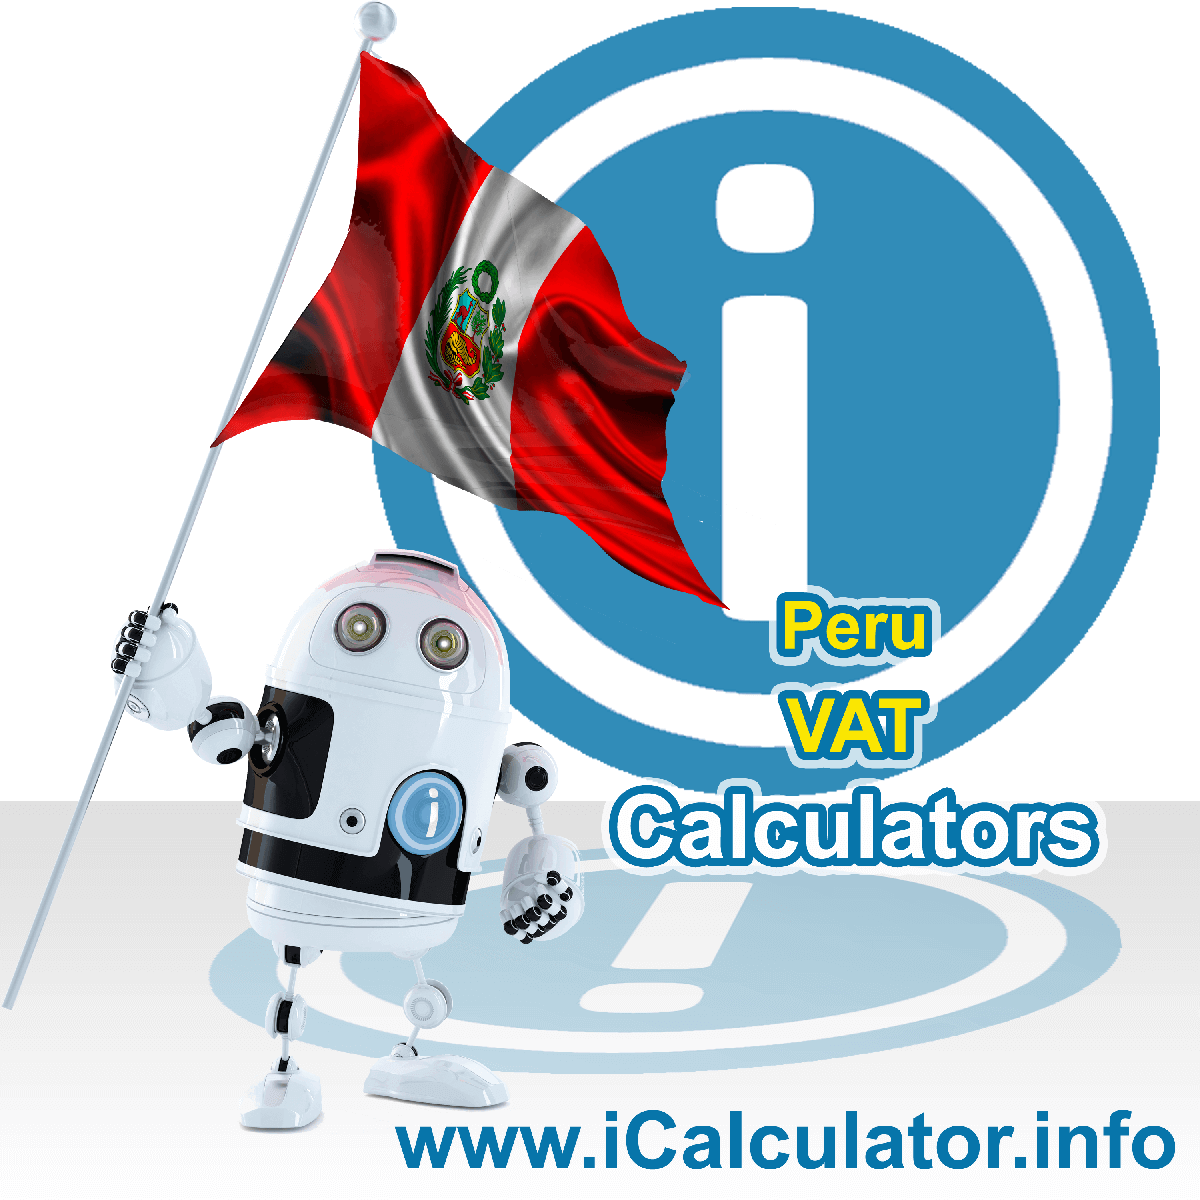 Peru VAT Calculator. This image shows the Peru flag and information relating to the VAT formula used for calculating Value Added Tax in Peru using the Peru VAT Calculator in 2020